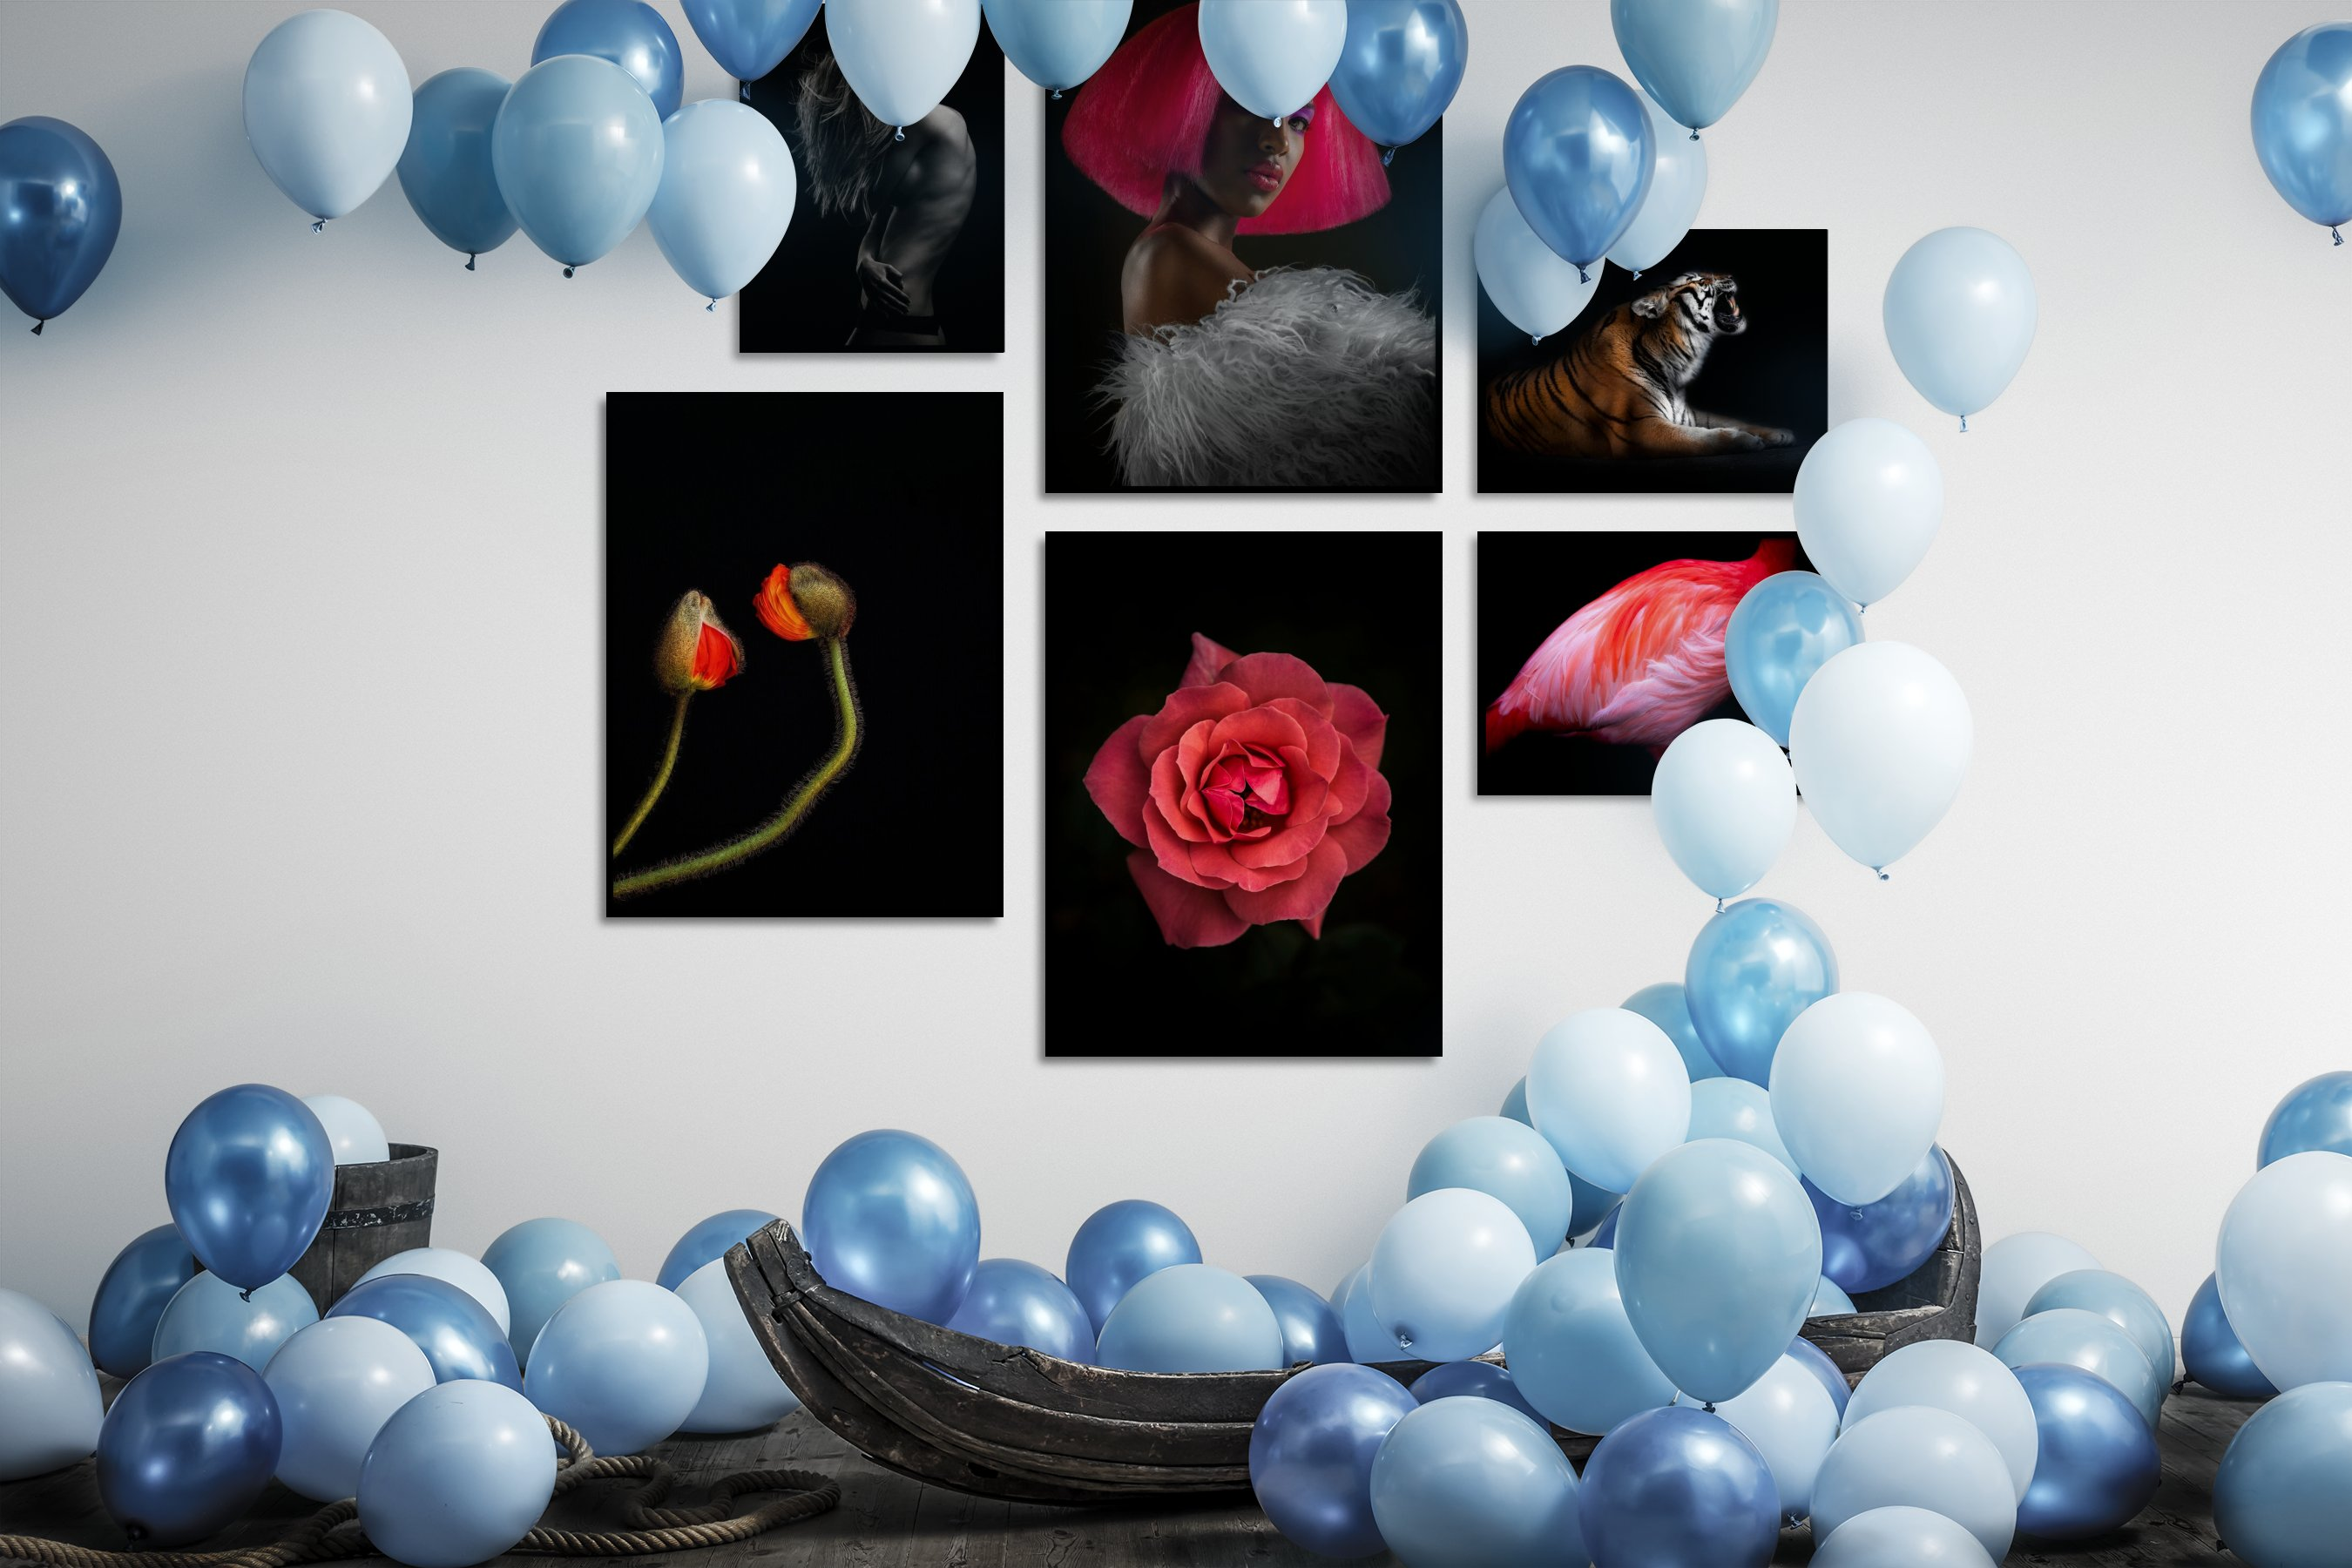 Gallery wall idea with six framed pictures arranged on a wall depicting Fashion & Beauty, Black & White, Dark Tones, For the Minimalist, Vintage, Flowers & Plants, Colorful, and Animals